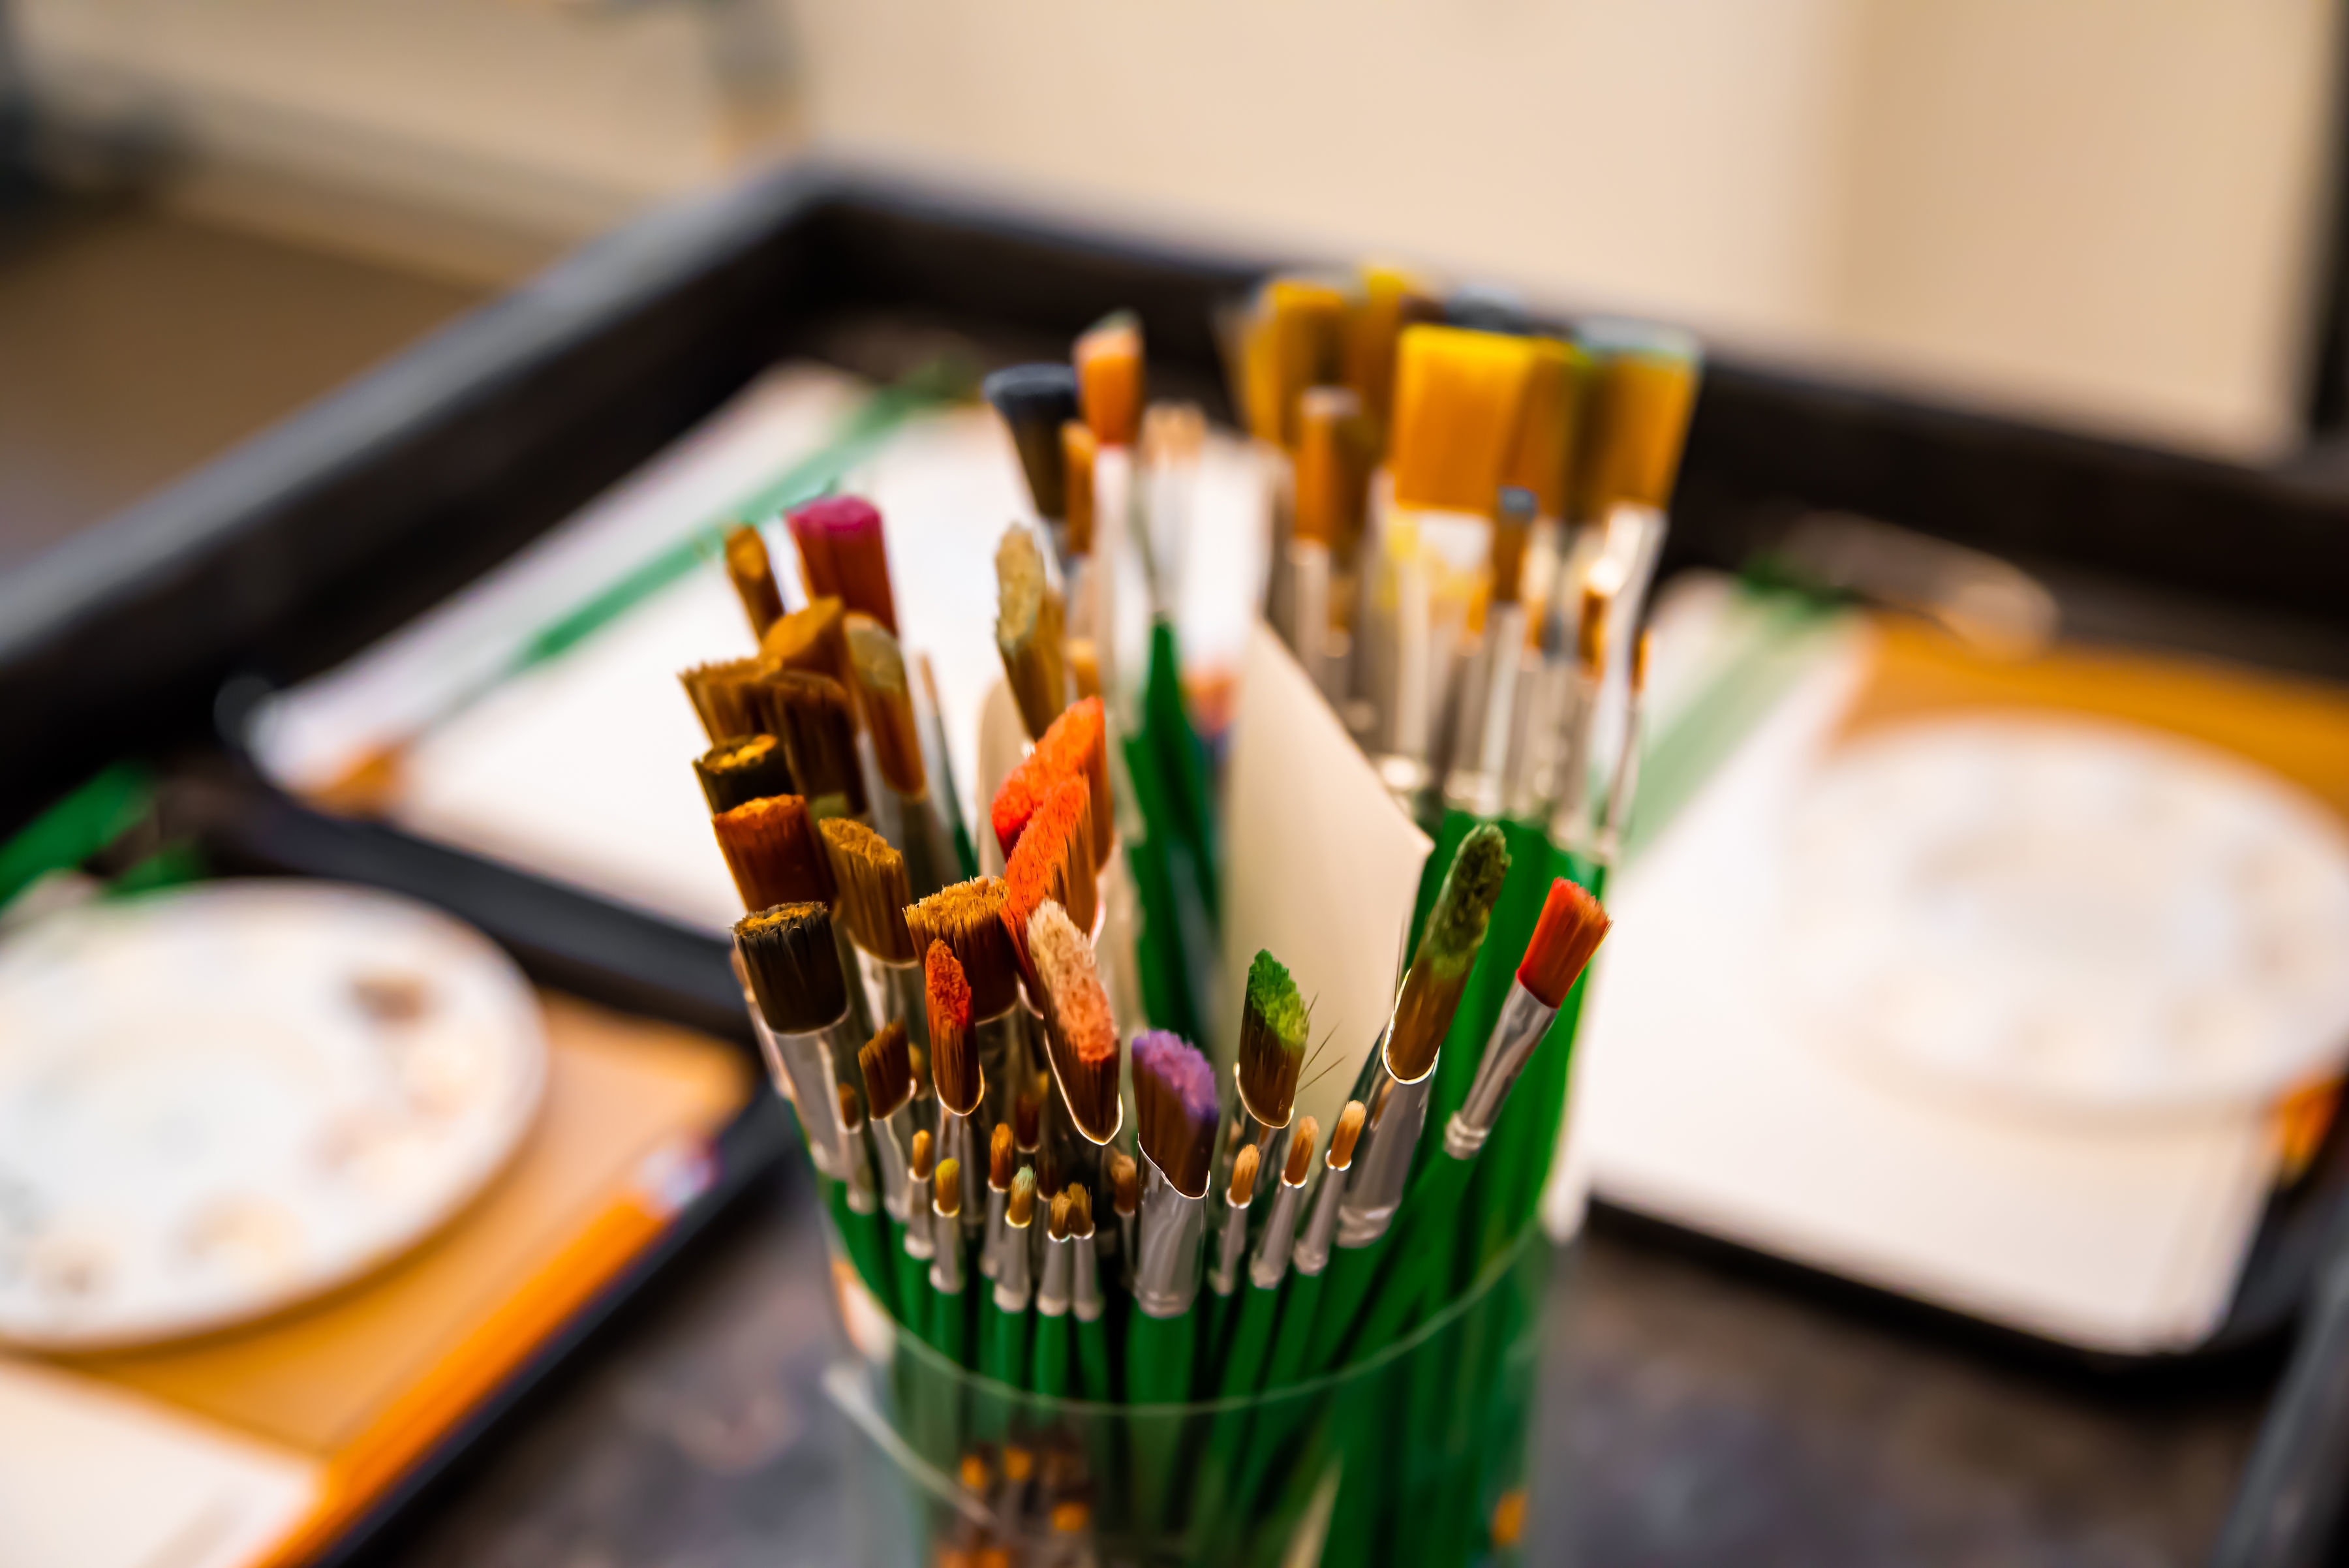 A set of paintbrushes in a cup with palettes out of focus in background